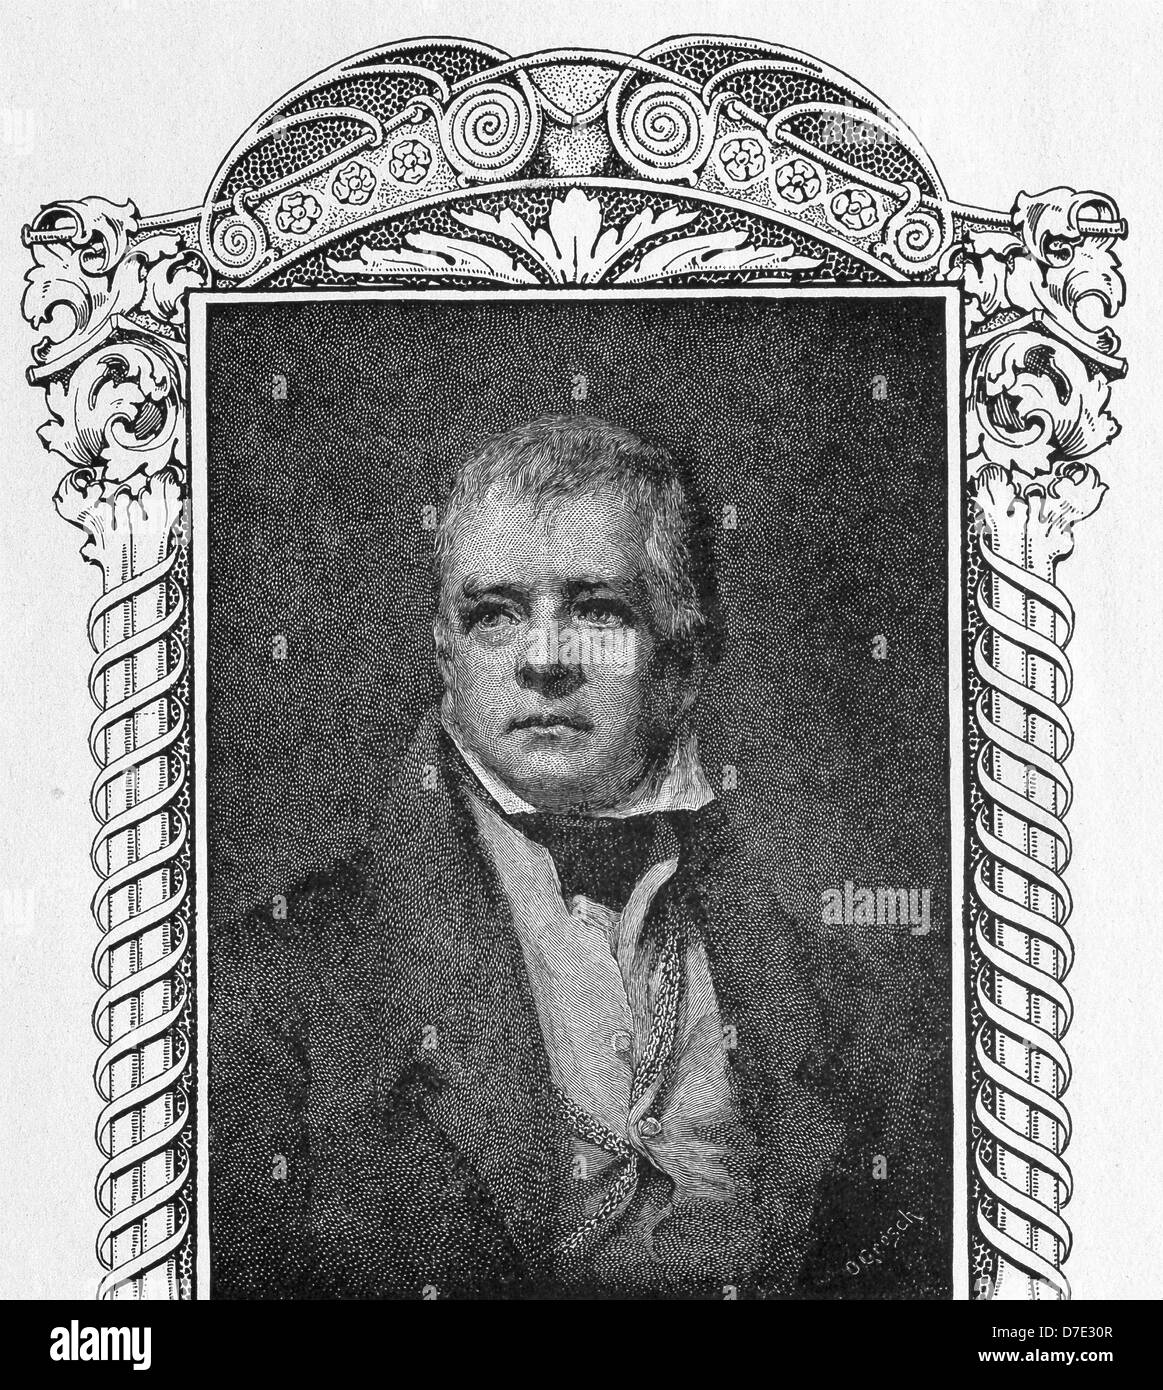 Scottish novelist and poet Sir Walter Scott is often credited as the inventor of the historical novel. - Stock Image